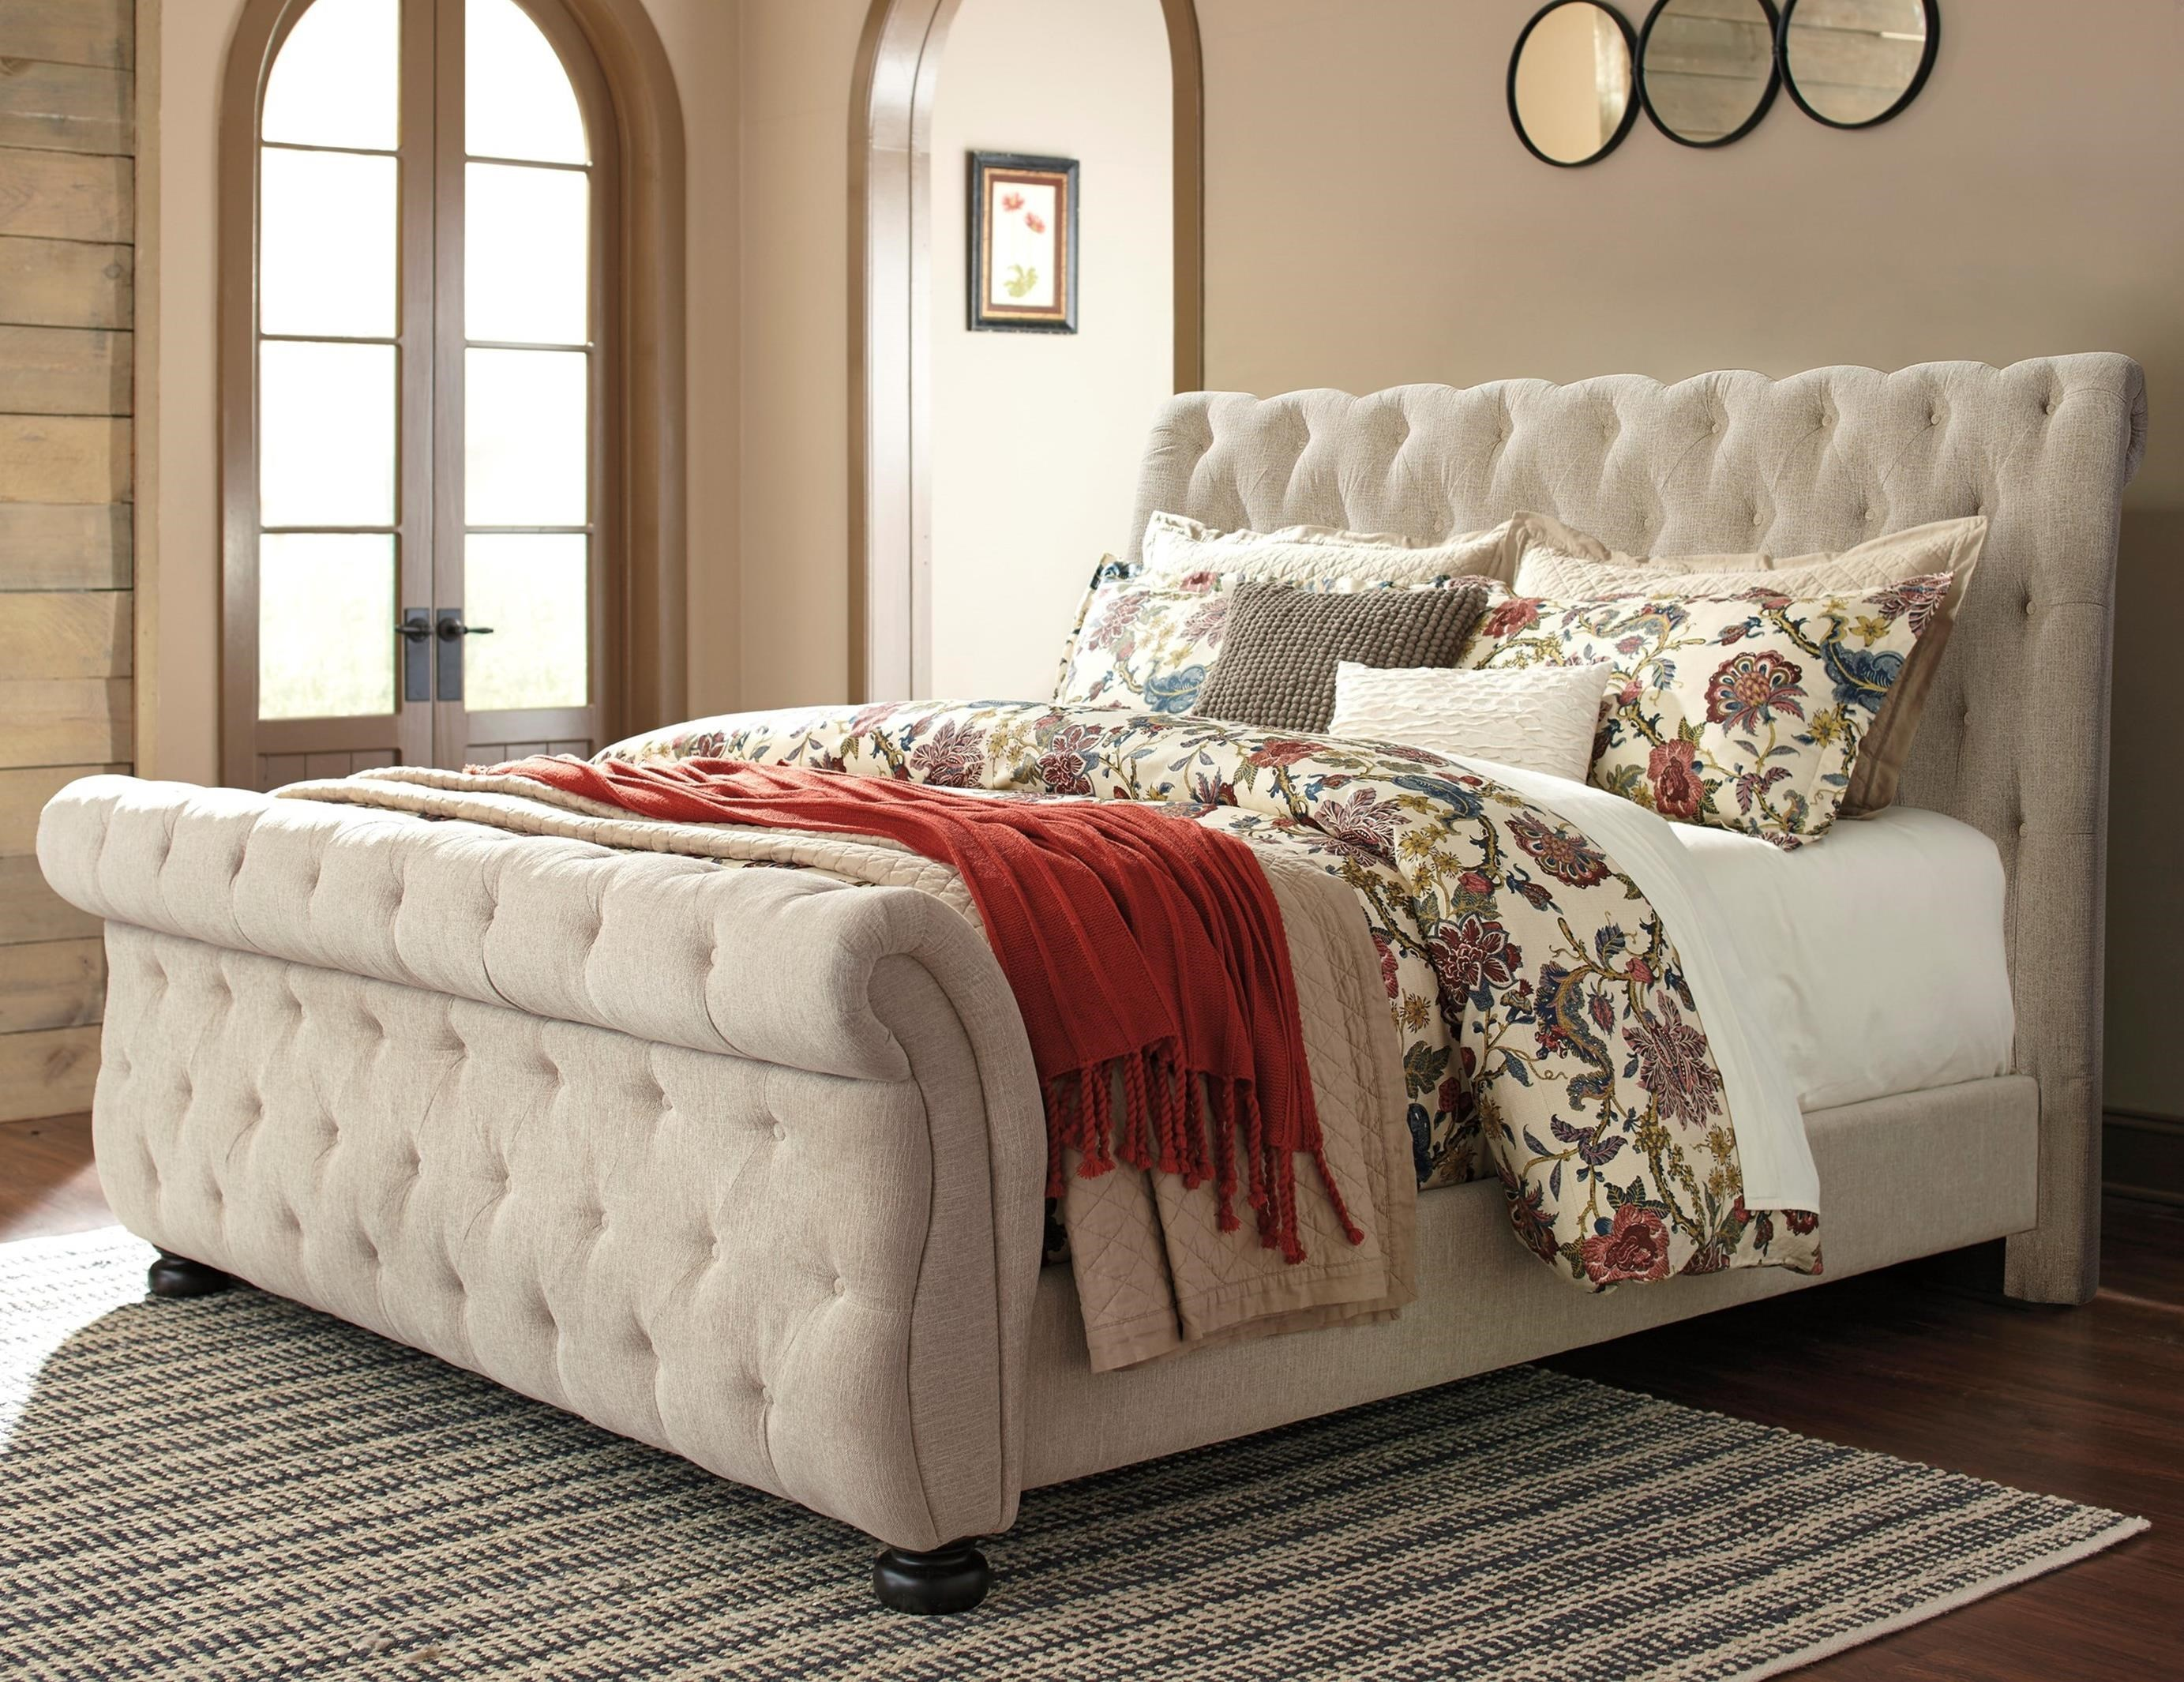 Signature Design By Ashley Willenburg King Upholstered Sleigh Bed With Tufting Royal Furniture Upholstered Beds